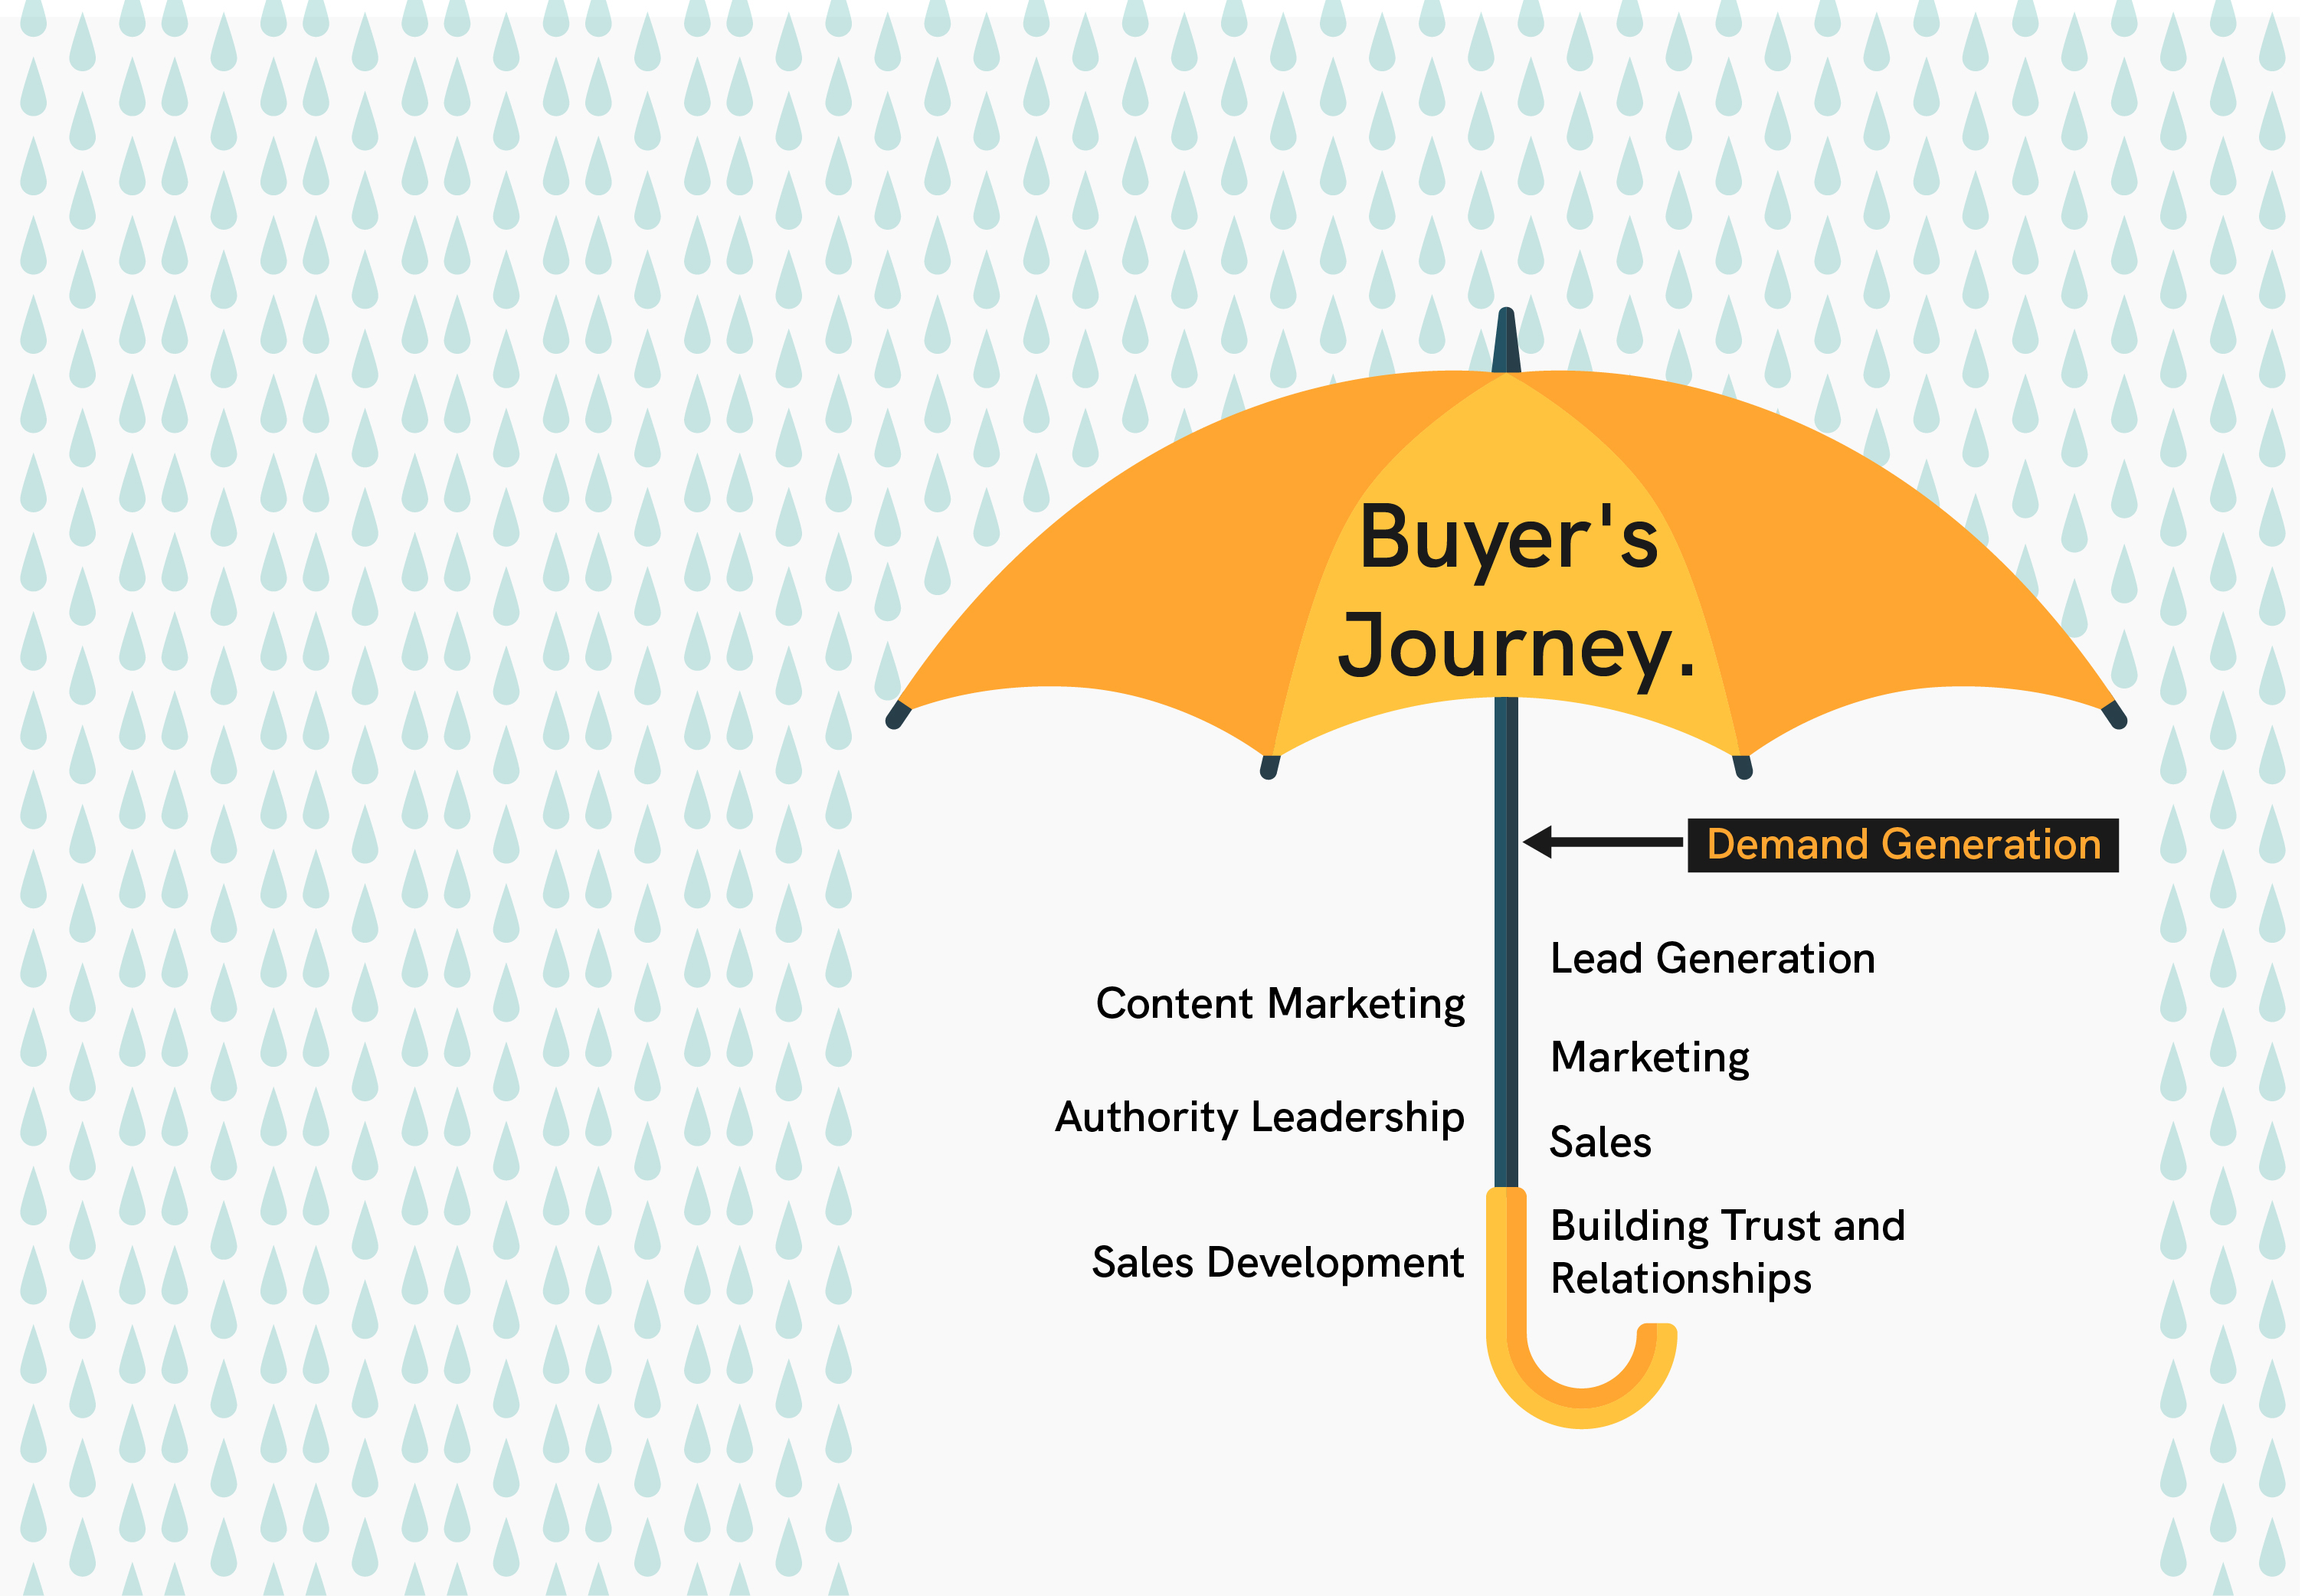 If the buyer's journey is the umbrella that covers marketing, lead gen and sales strategies, then demand generation is the umbrella's stalk that connects them all together.